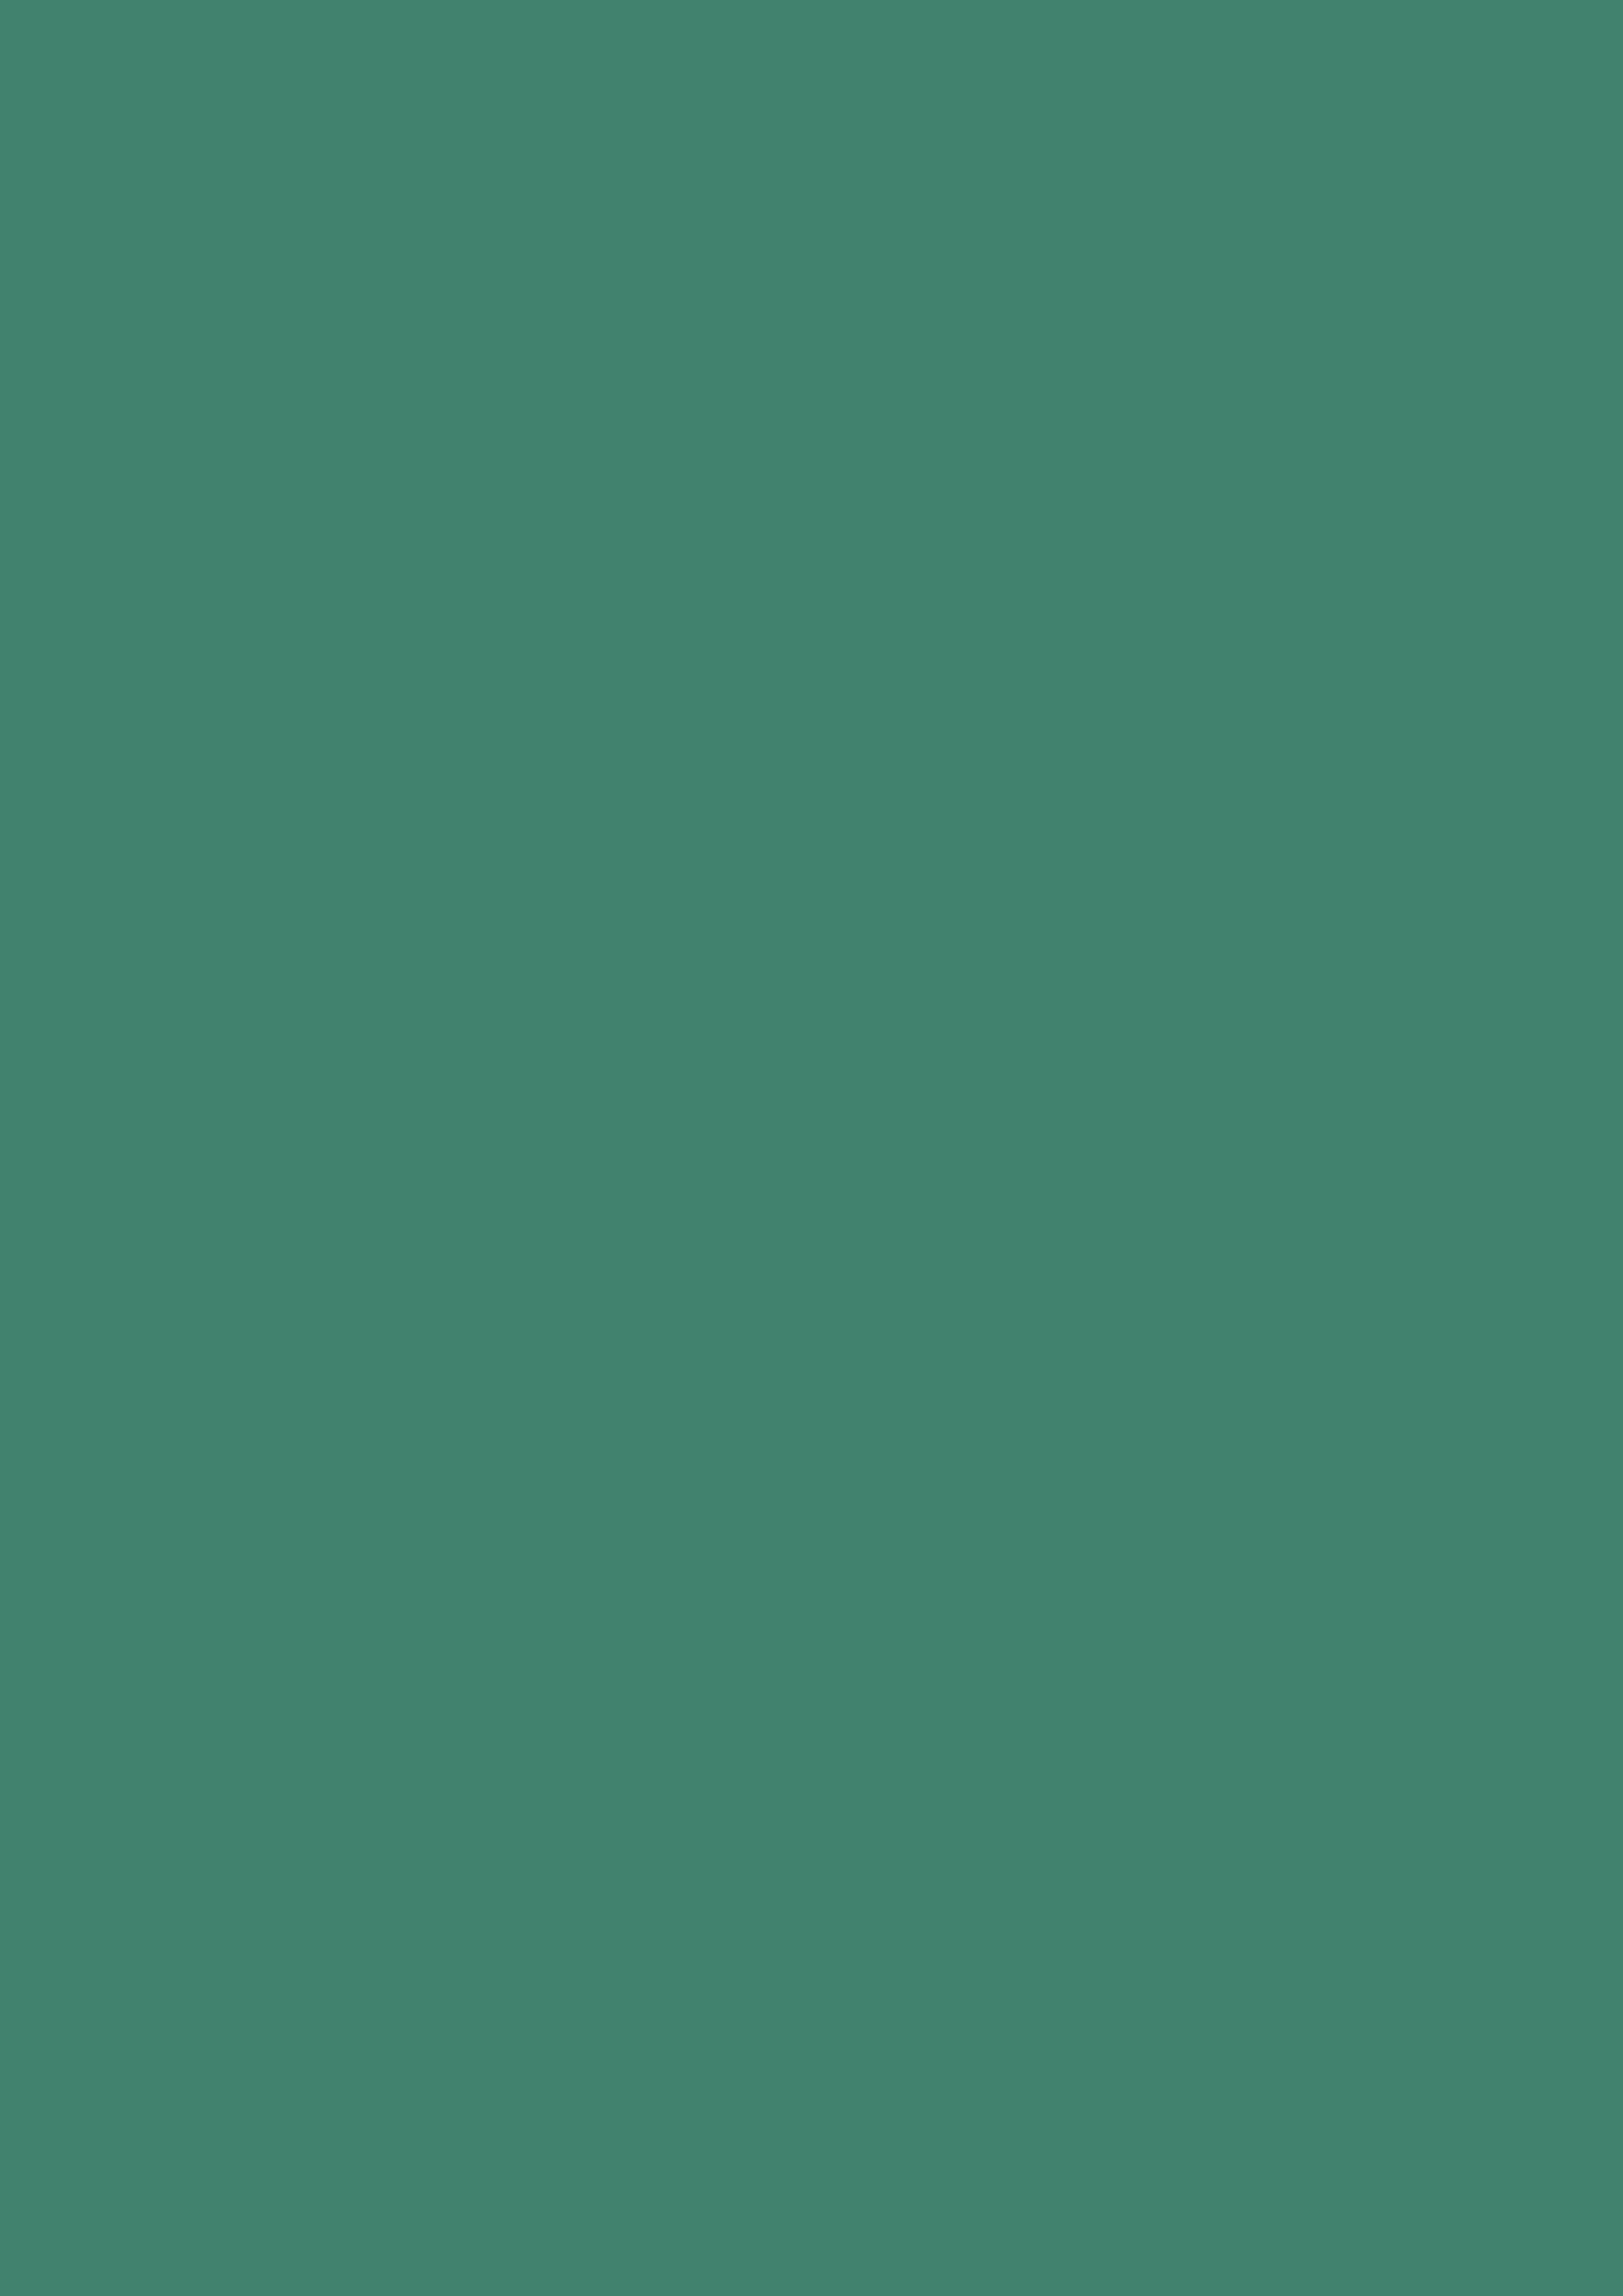 2480x3508 Viridian Solid Color Background